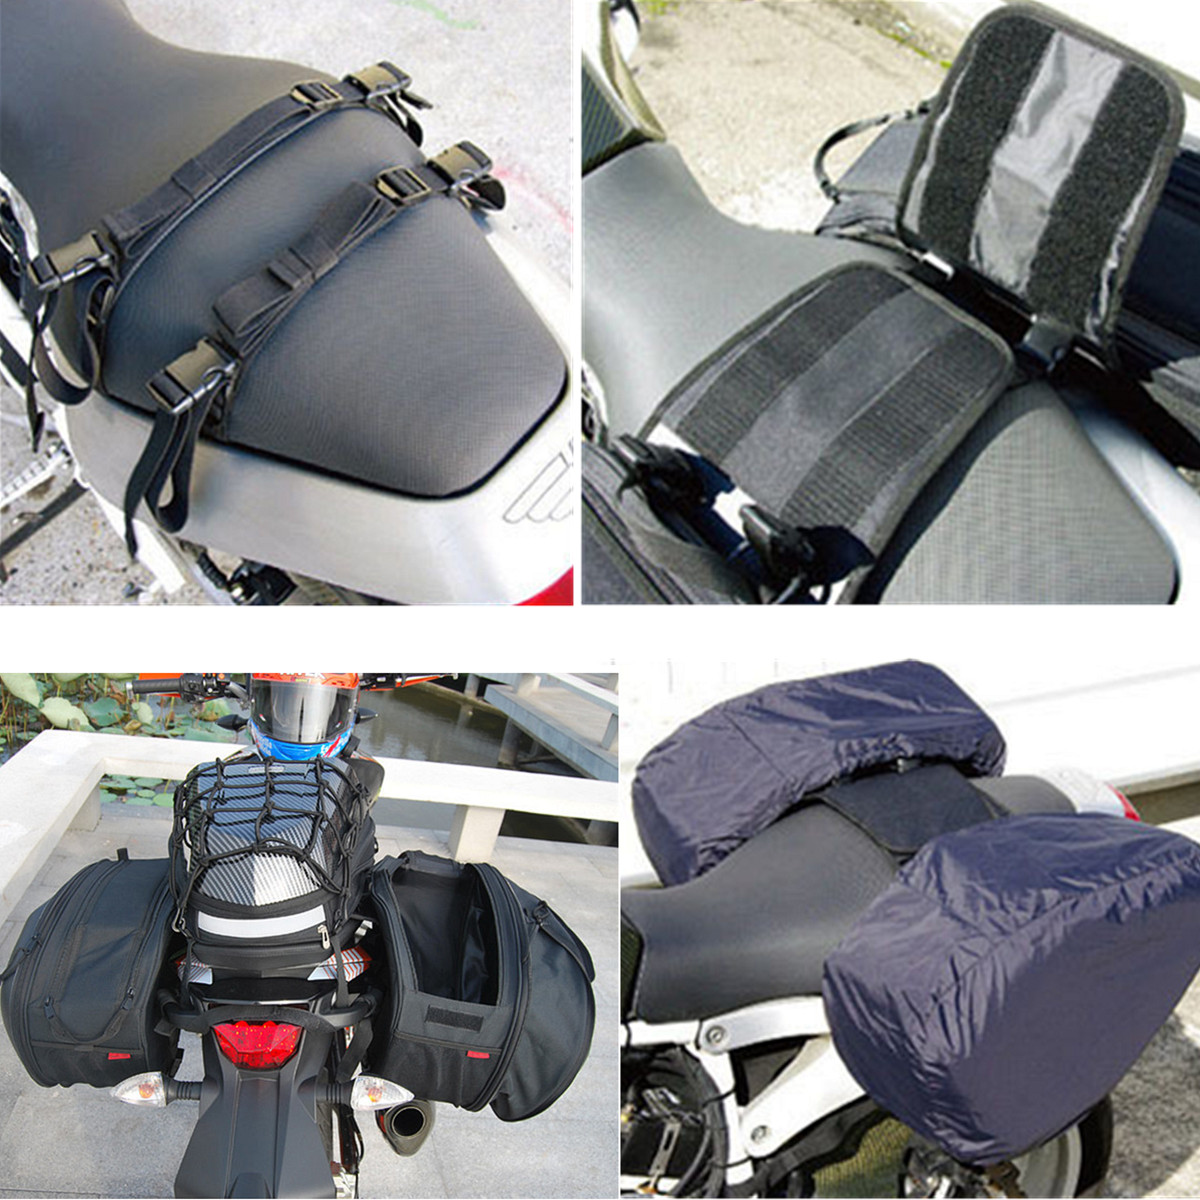 36L-58L Large Capacity Luggage Saddle Bag Motorcycle Rear Seat Multi-use Expandable